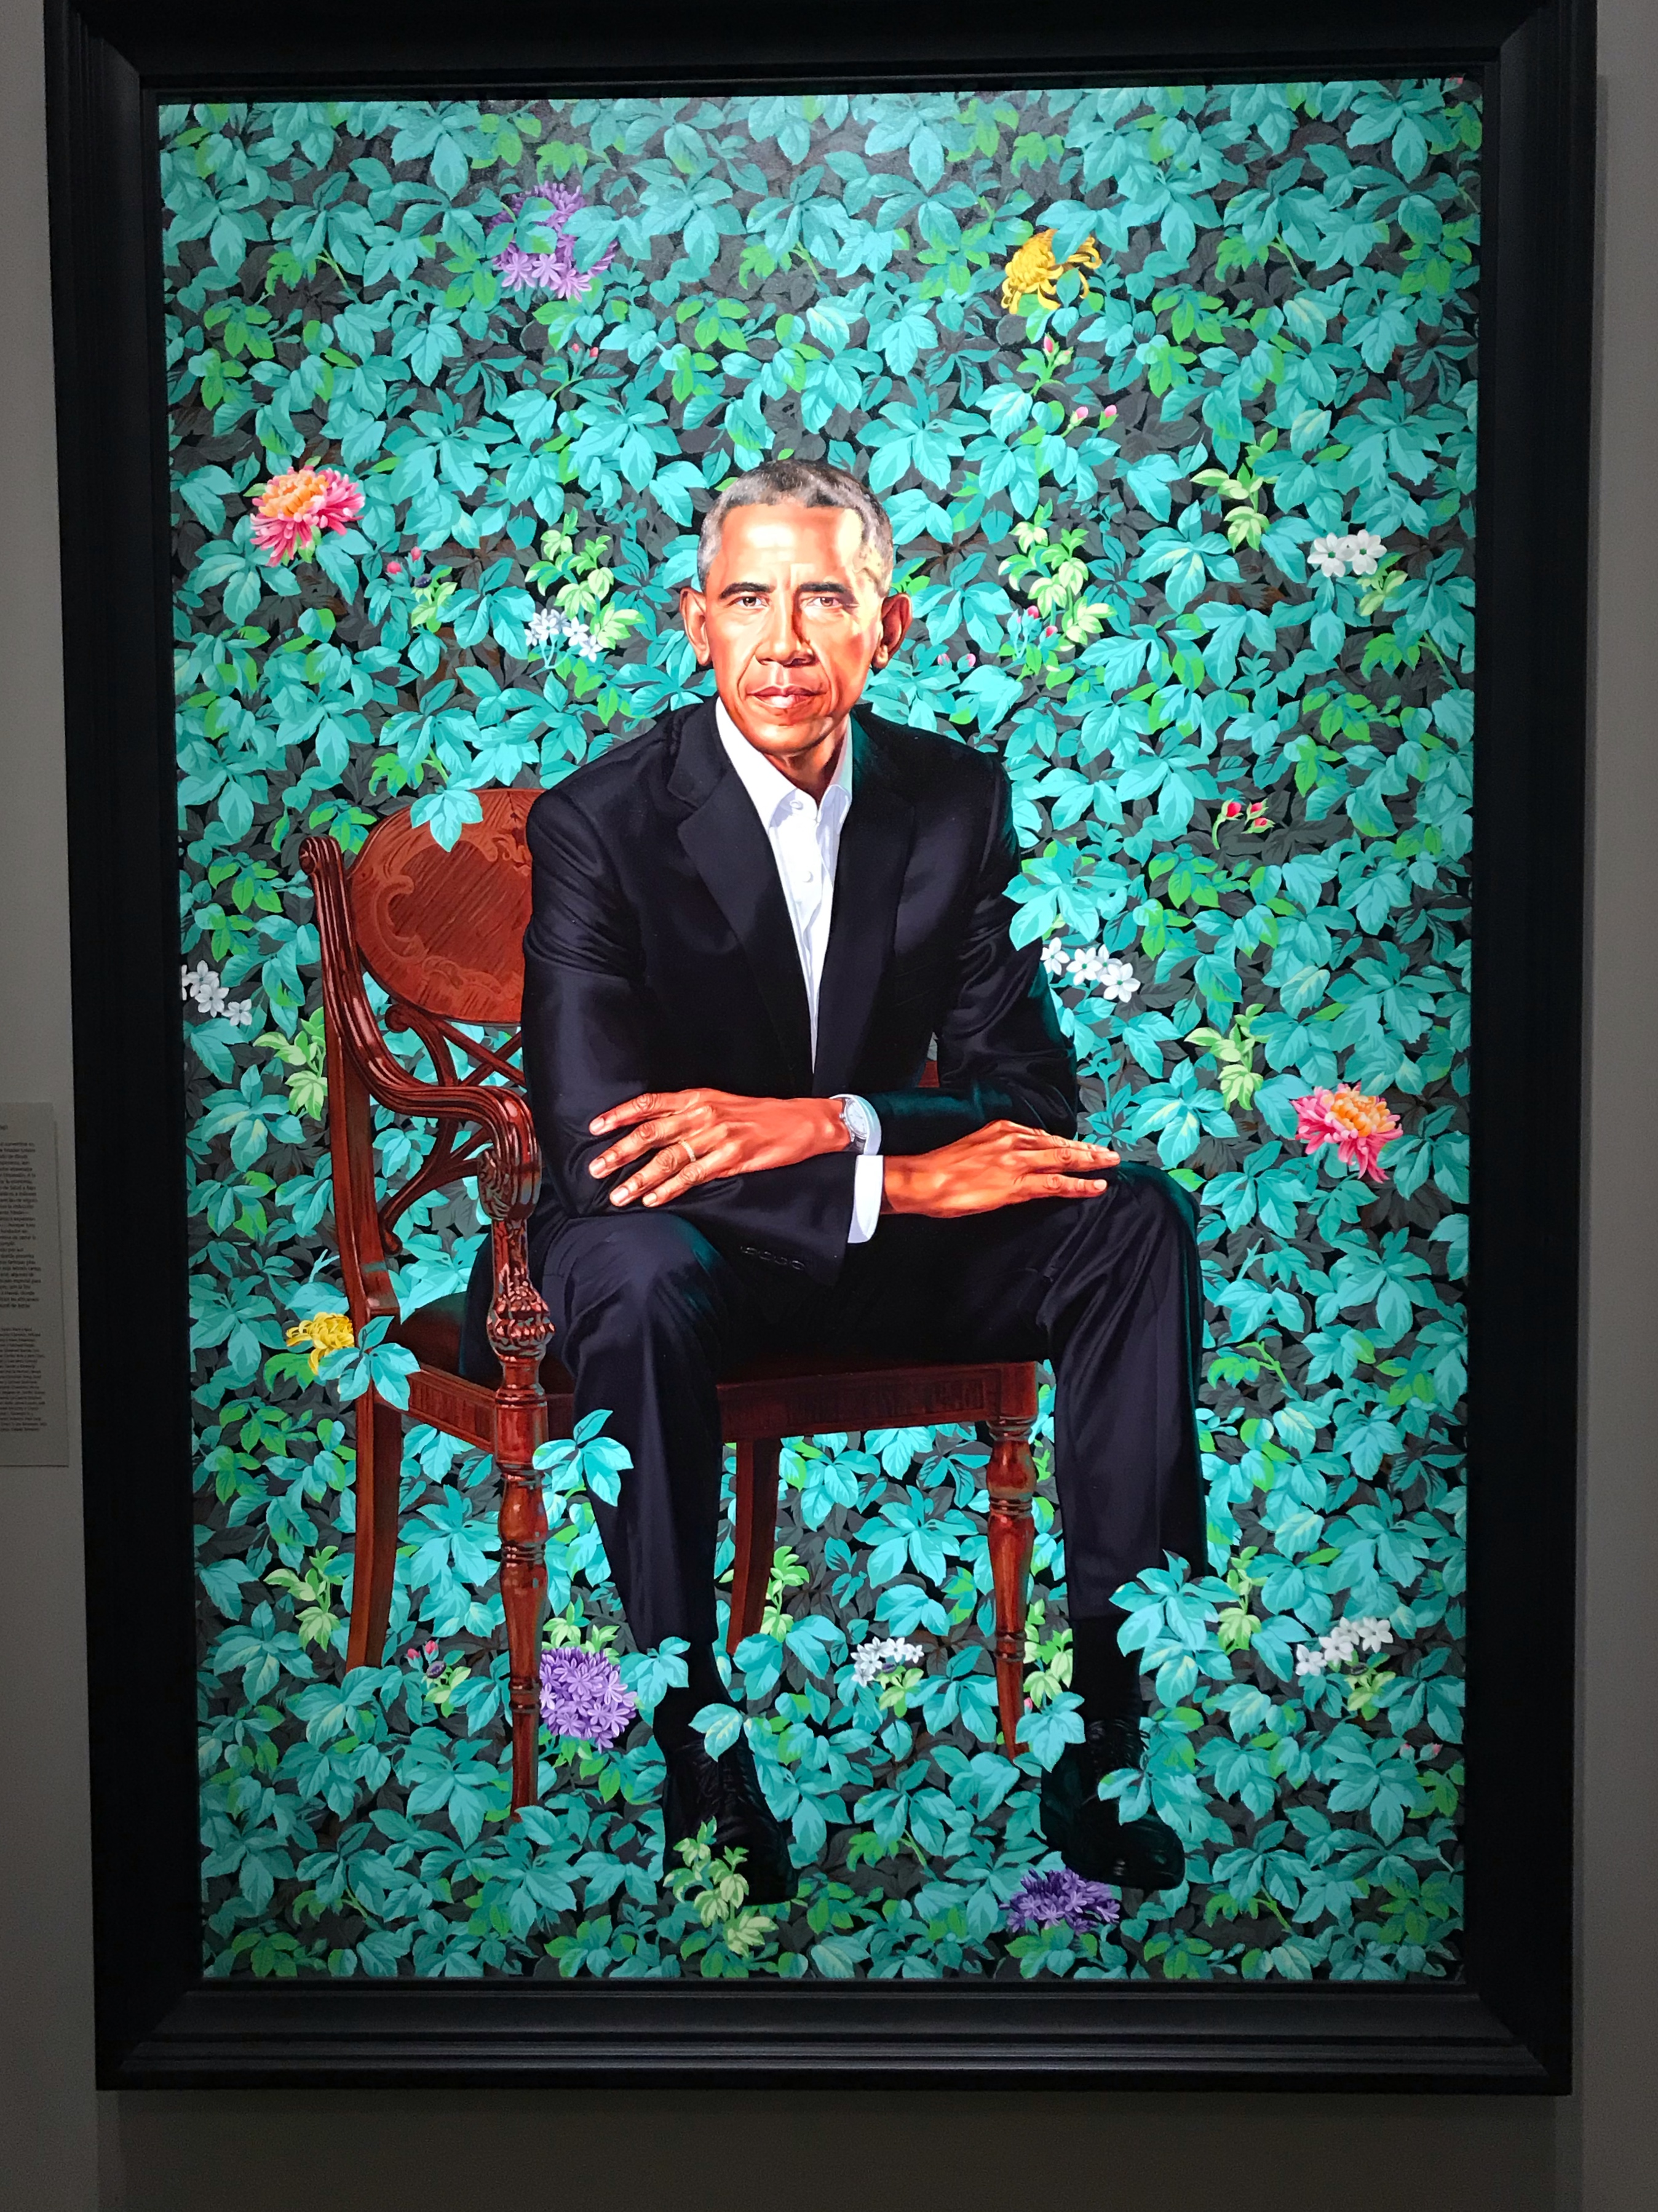 barak obama presidential portrait